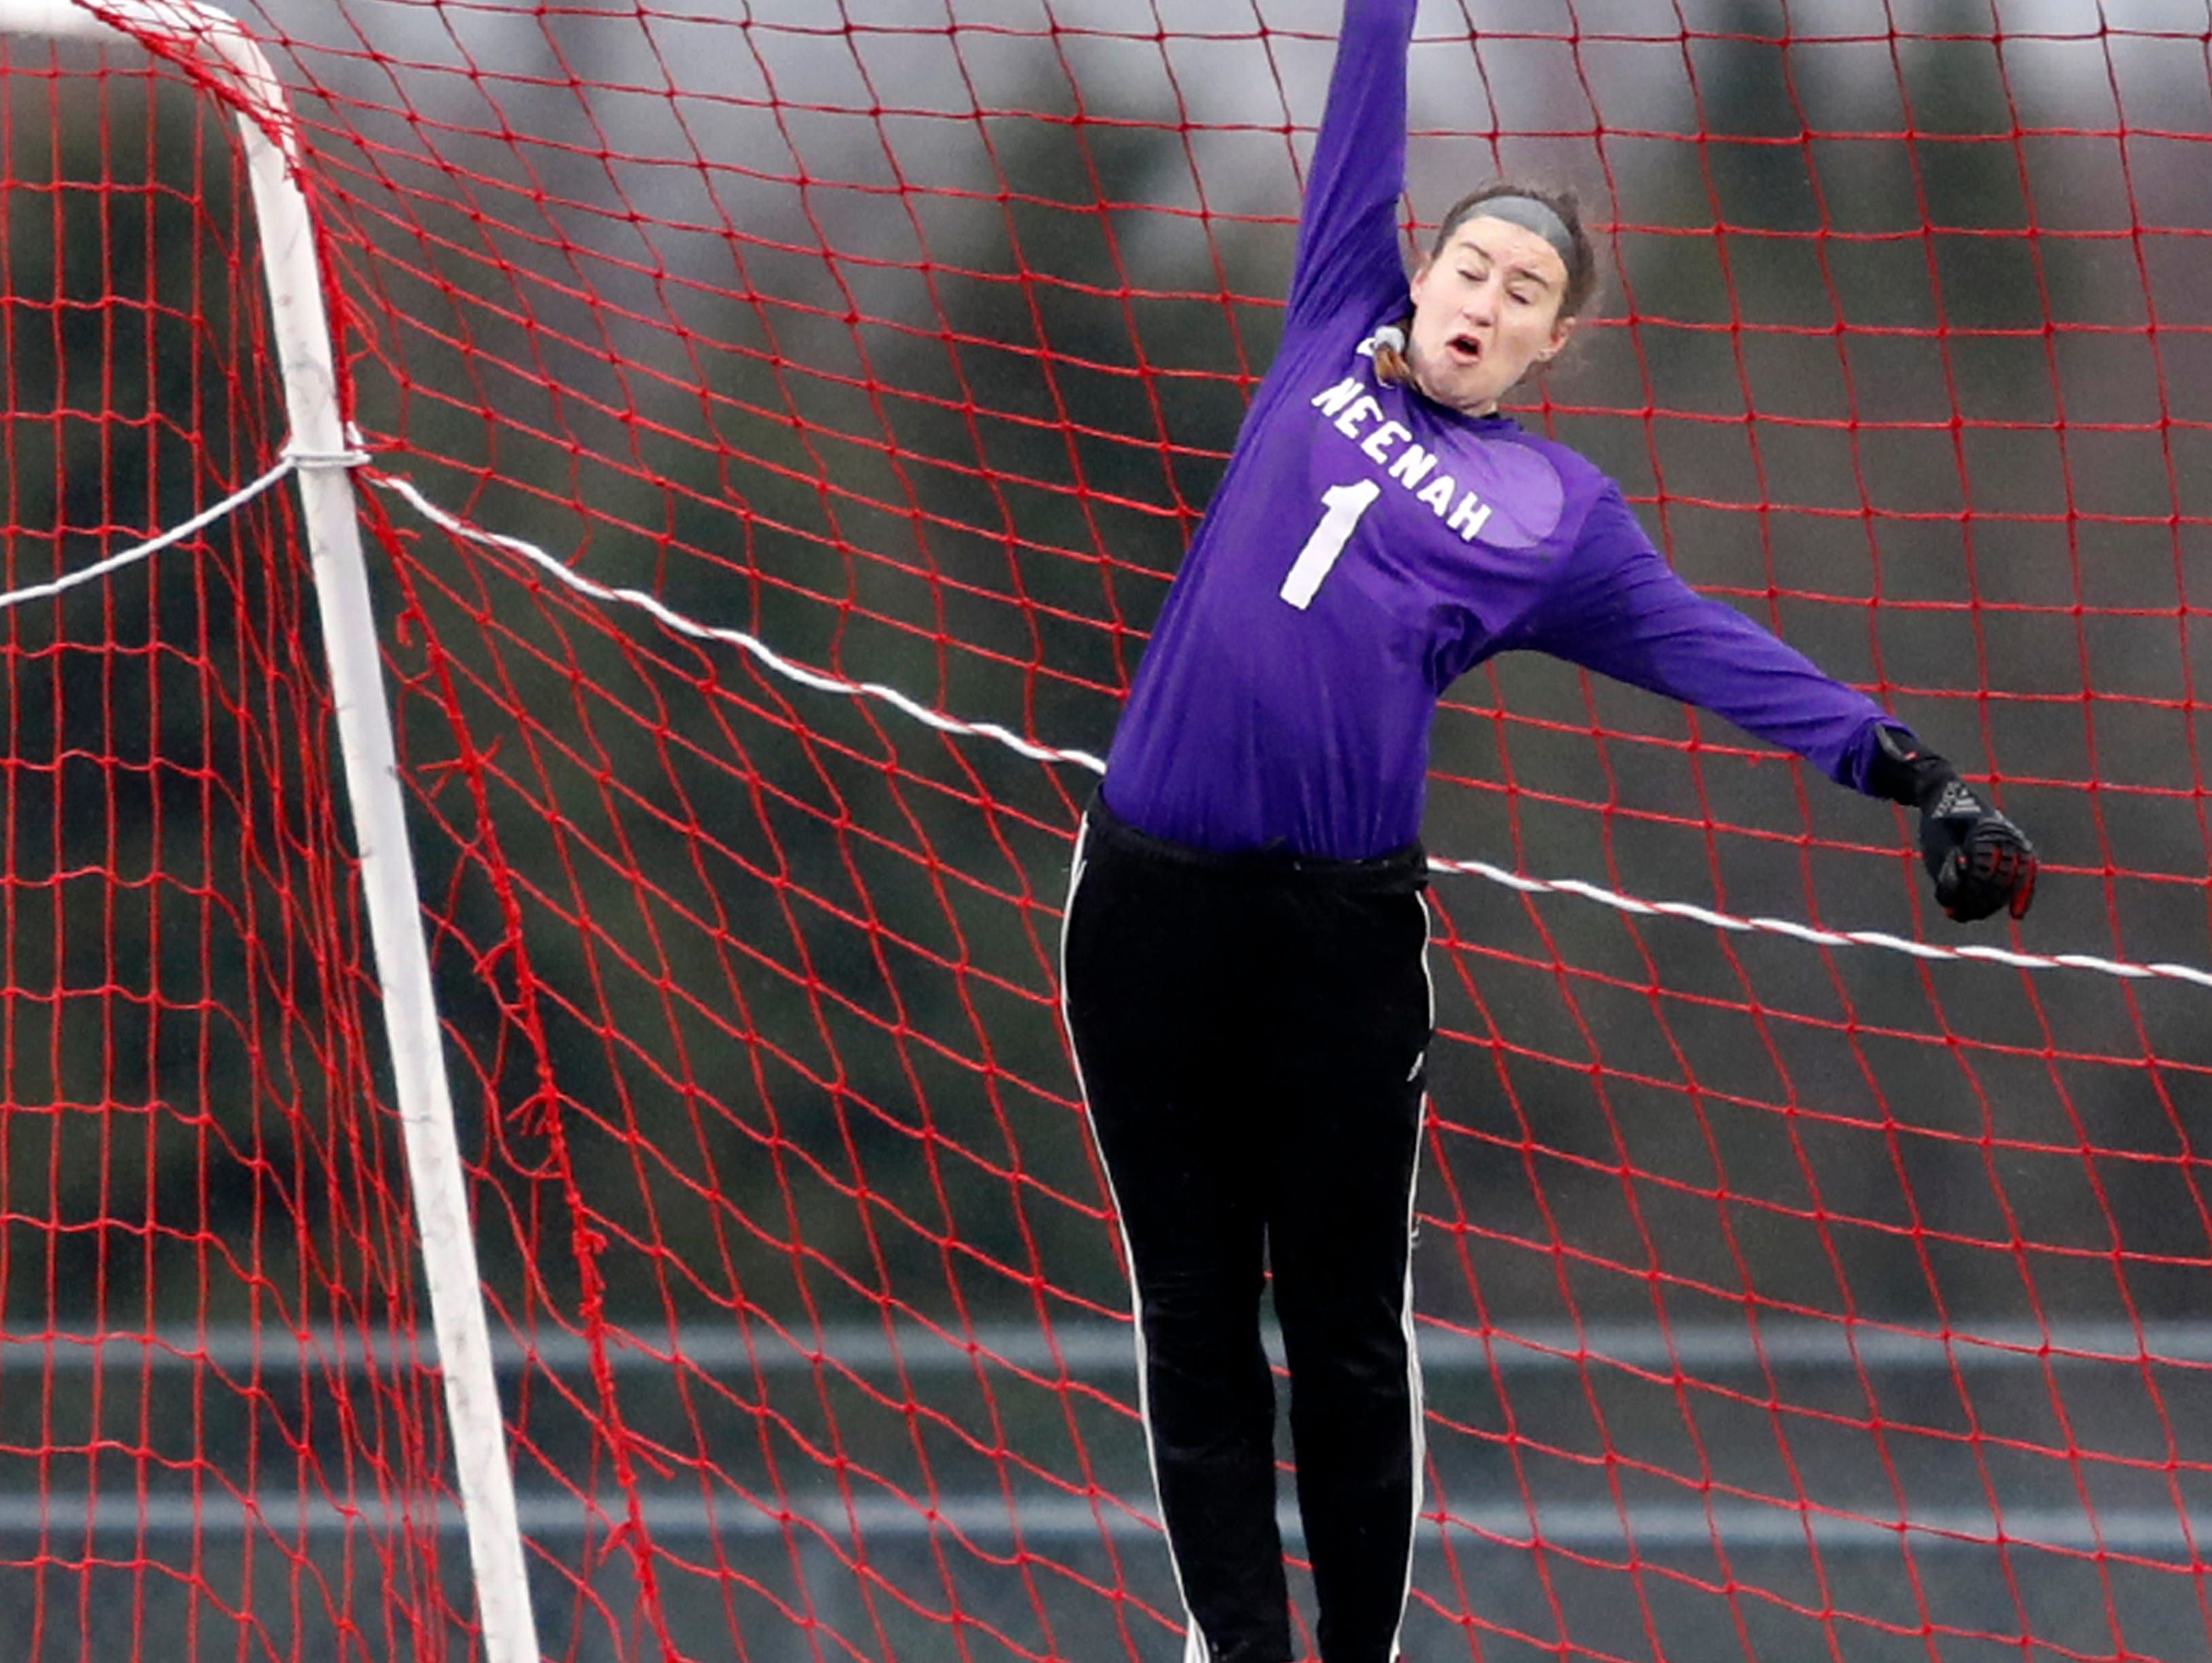 Neenah High School's goalkeeper McKenna Krueger leaps into the air to try and make a save against Kimberly High School Tuesday, April 30, 2019, in Kimberly, Wis. Danny Damiani/USA TODAY NETWORK-Wisconsin